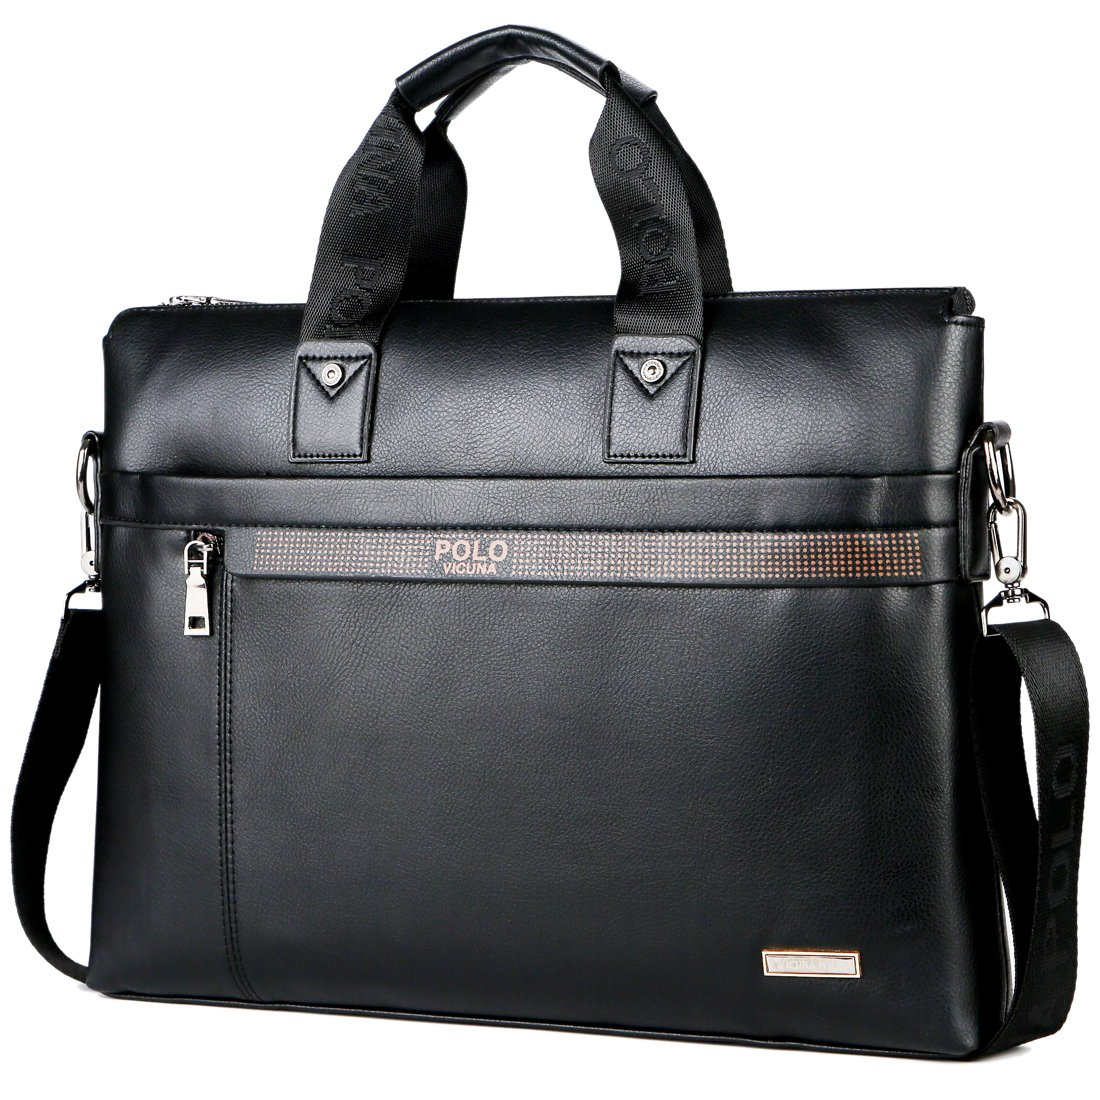 VICUNA POLO Men Briefcase Bag Business Bag Leather Laptop Bag Man Bag Handbag (black for 15.6inch)